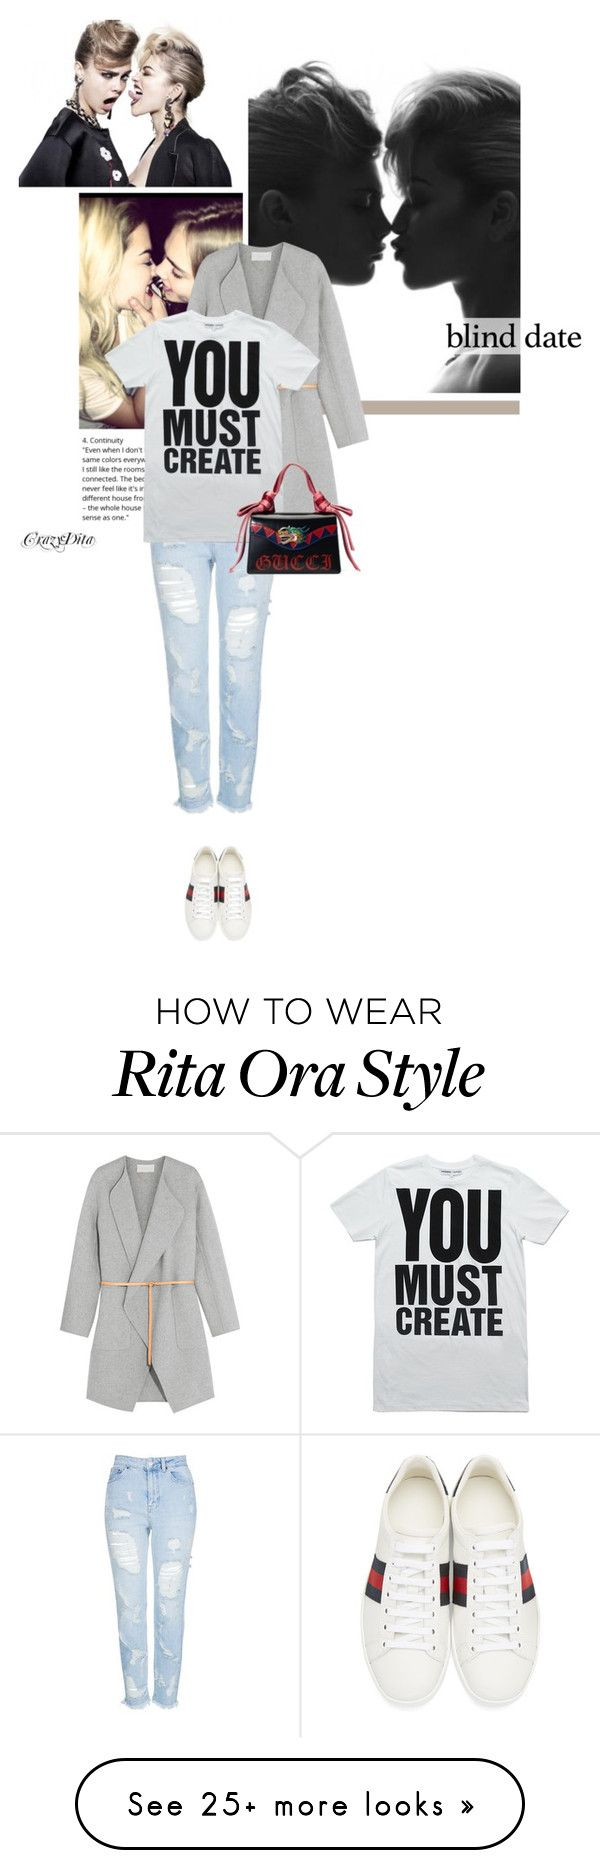 """"""" A little progress each day adds up to BIG results. """" by crazydita on Polyvore featuring Burberry, Topshop, Gucci, Vanessa Bruno and blinddate"""